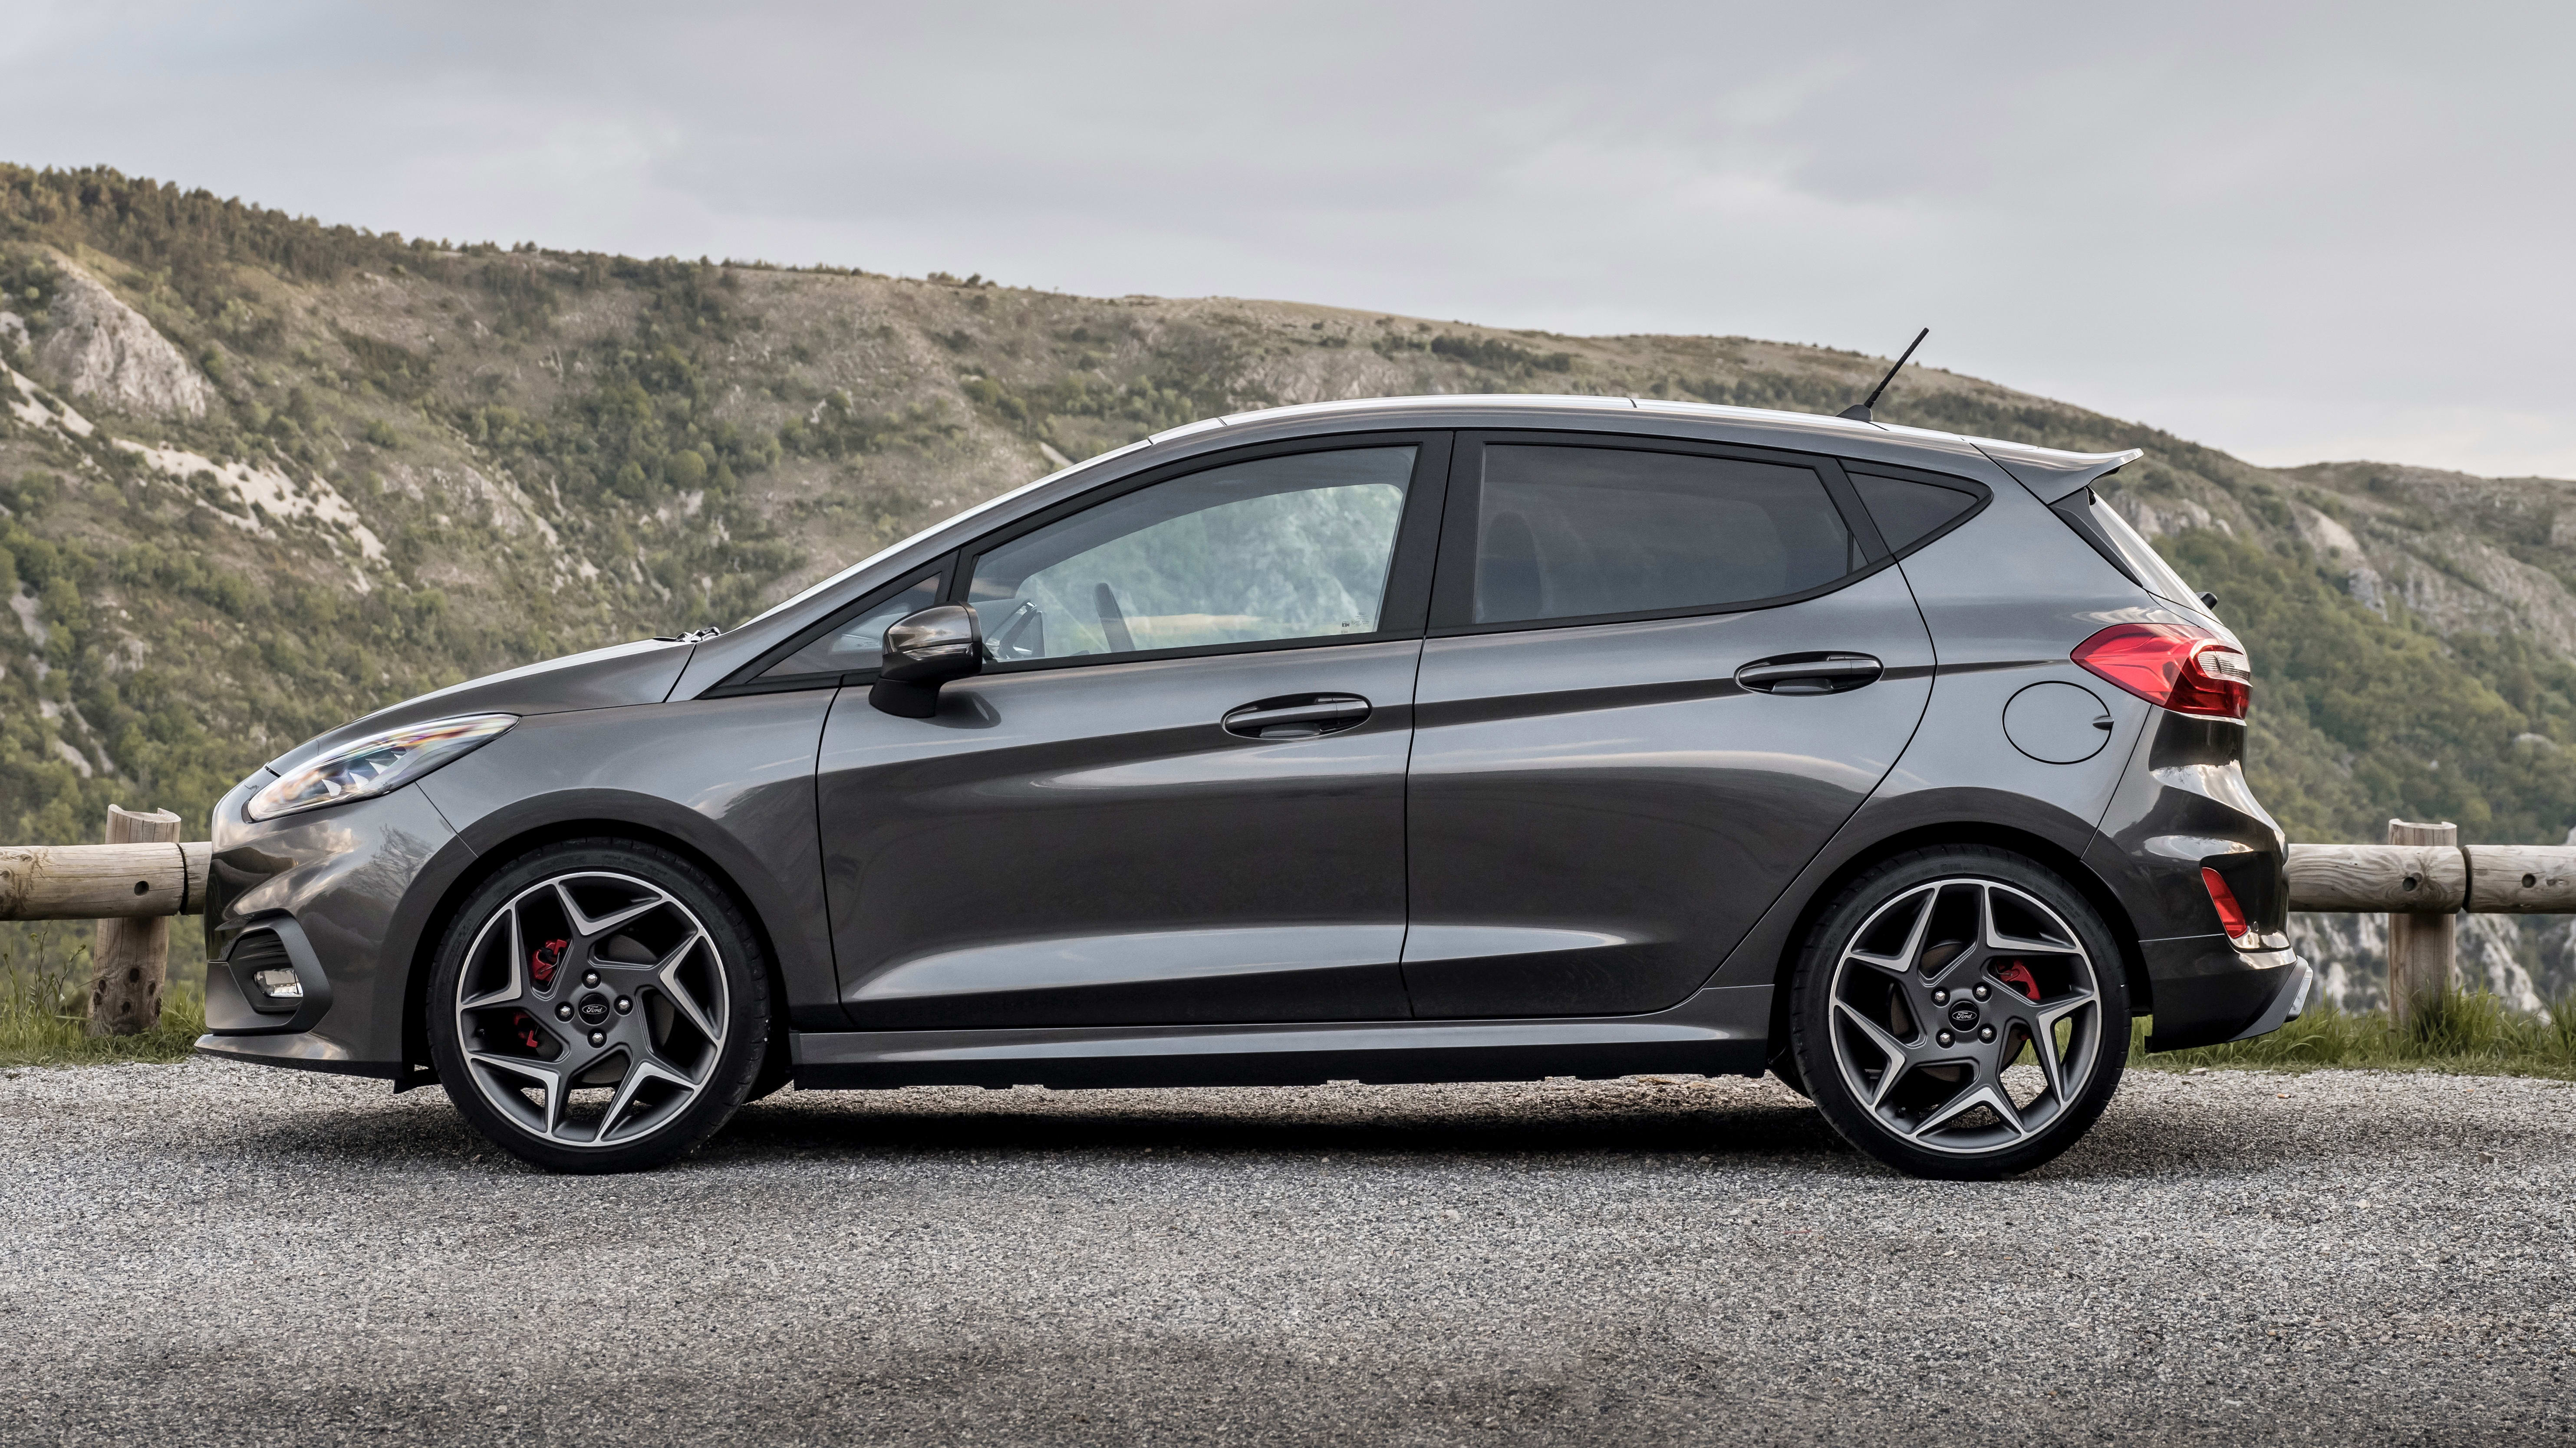 Ford Fiesta 2020 Review.2020 Ford Fiesta St Pricing And Specs Caradvice